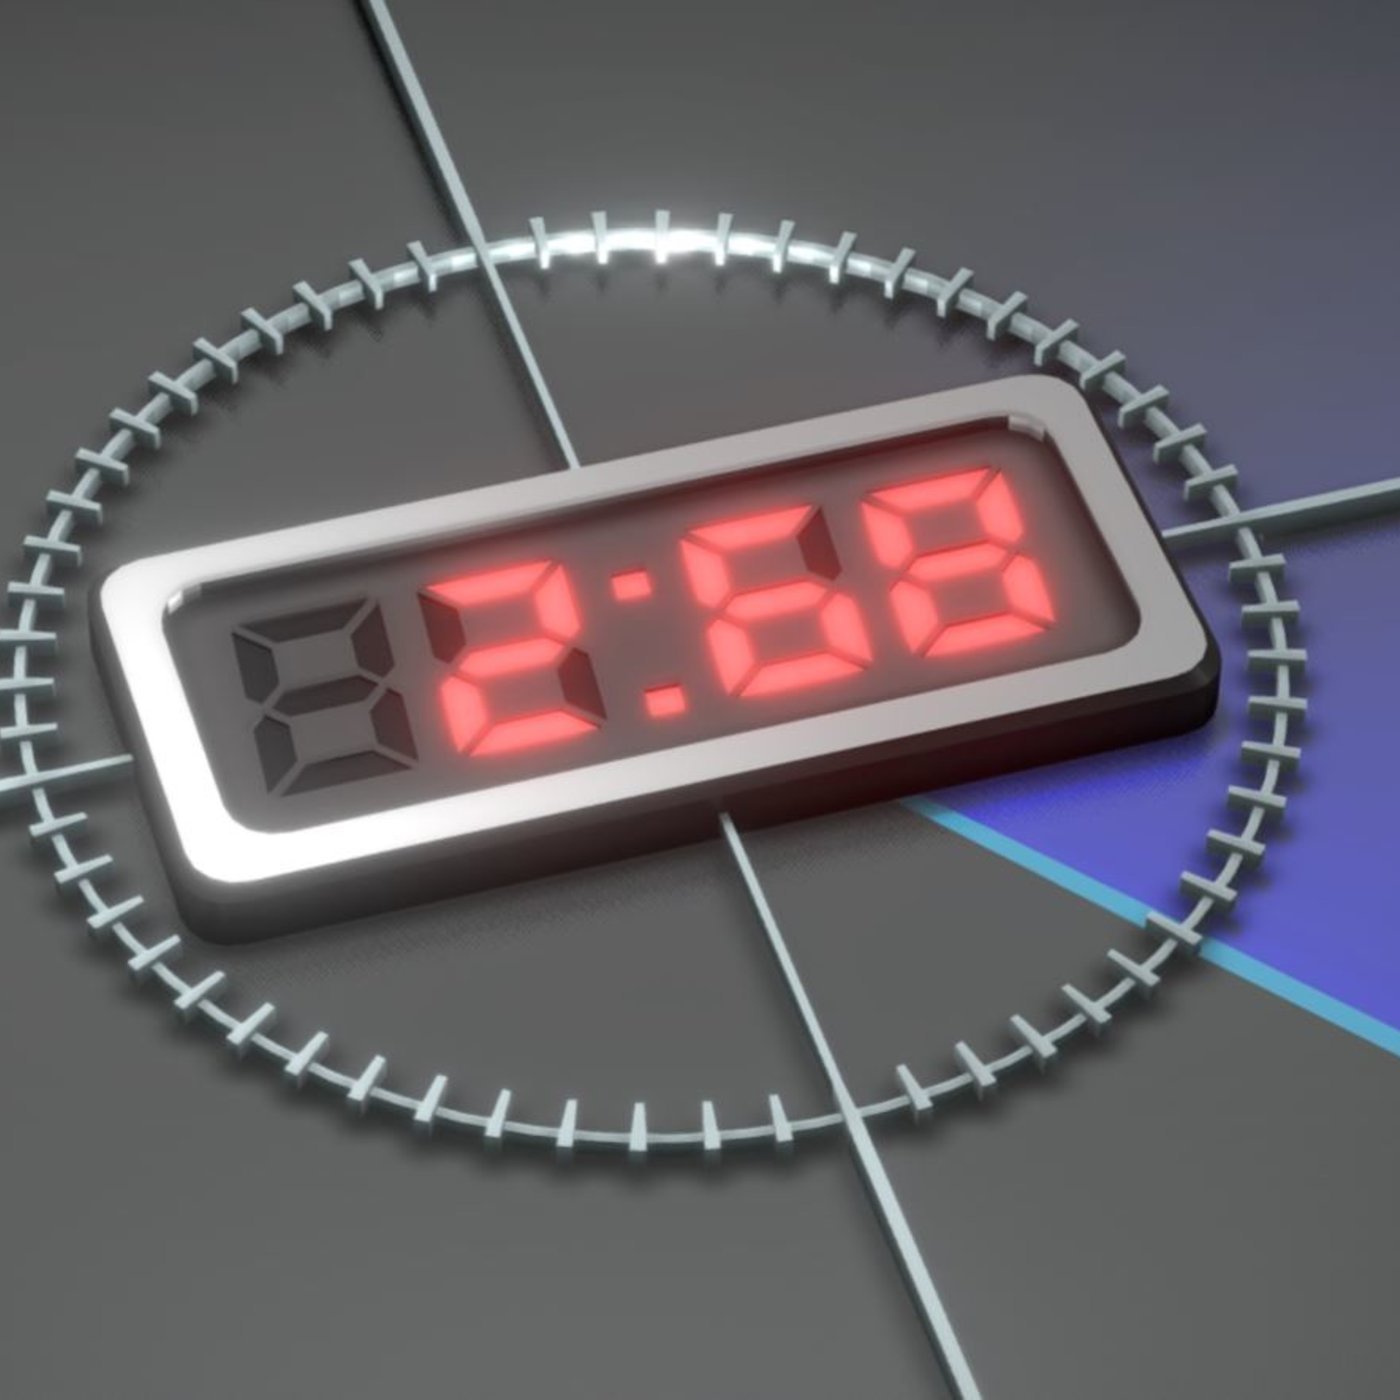 3D Countdown 5 4 3 2 1 - Animation